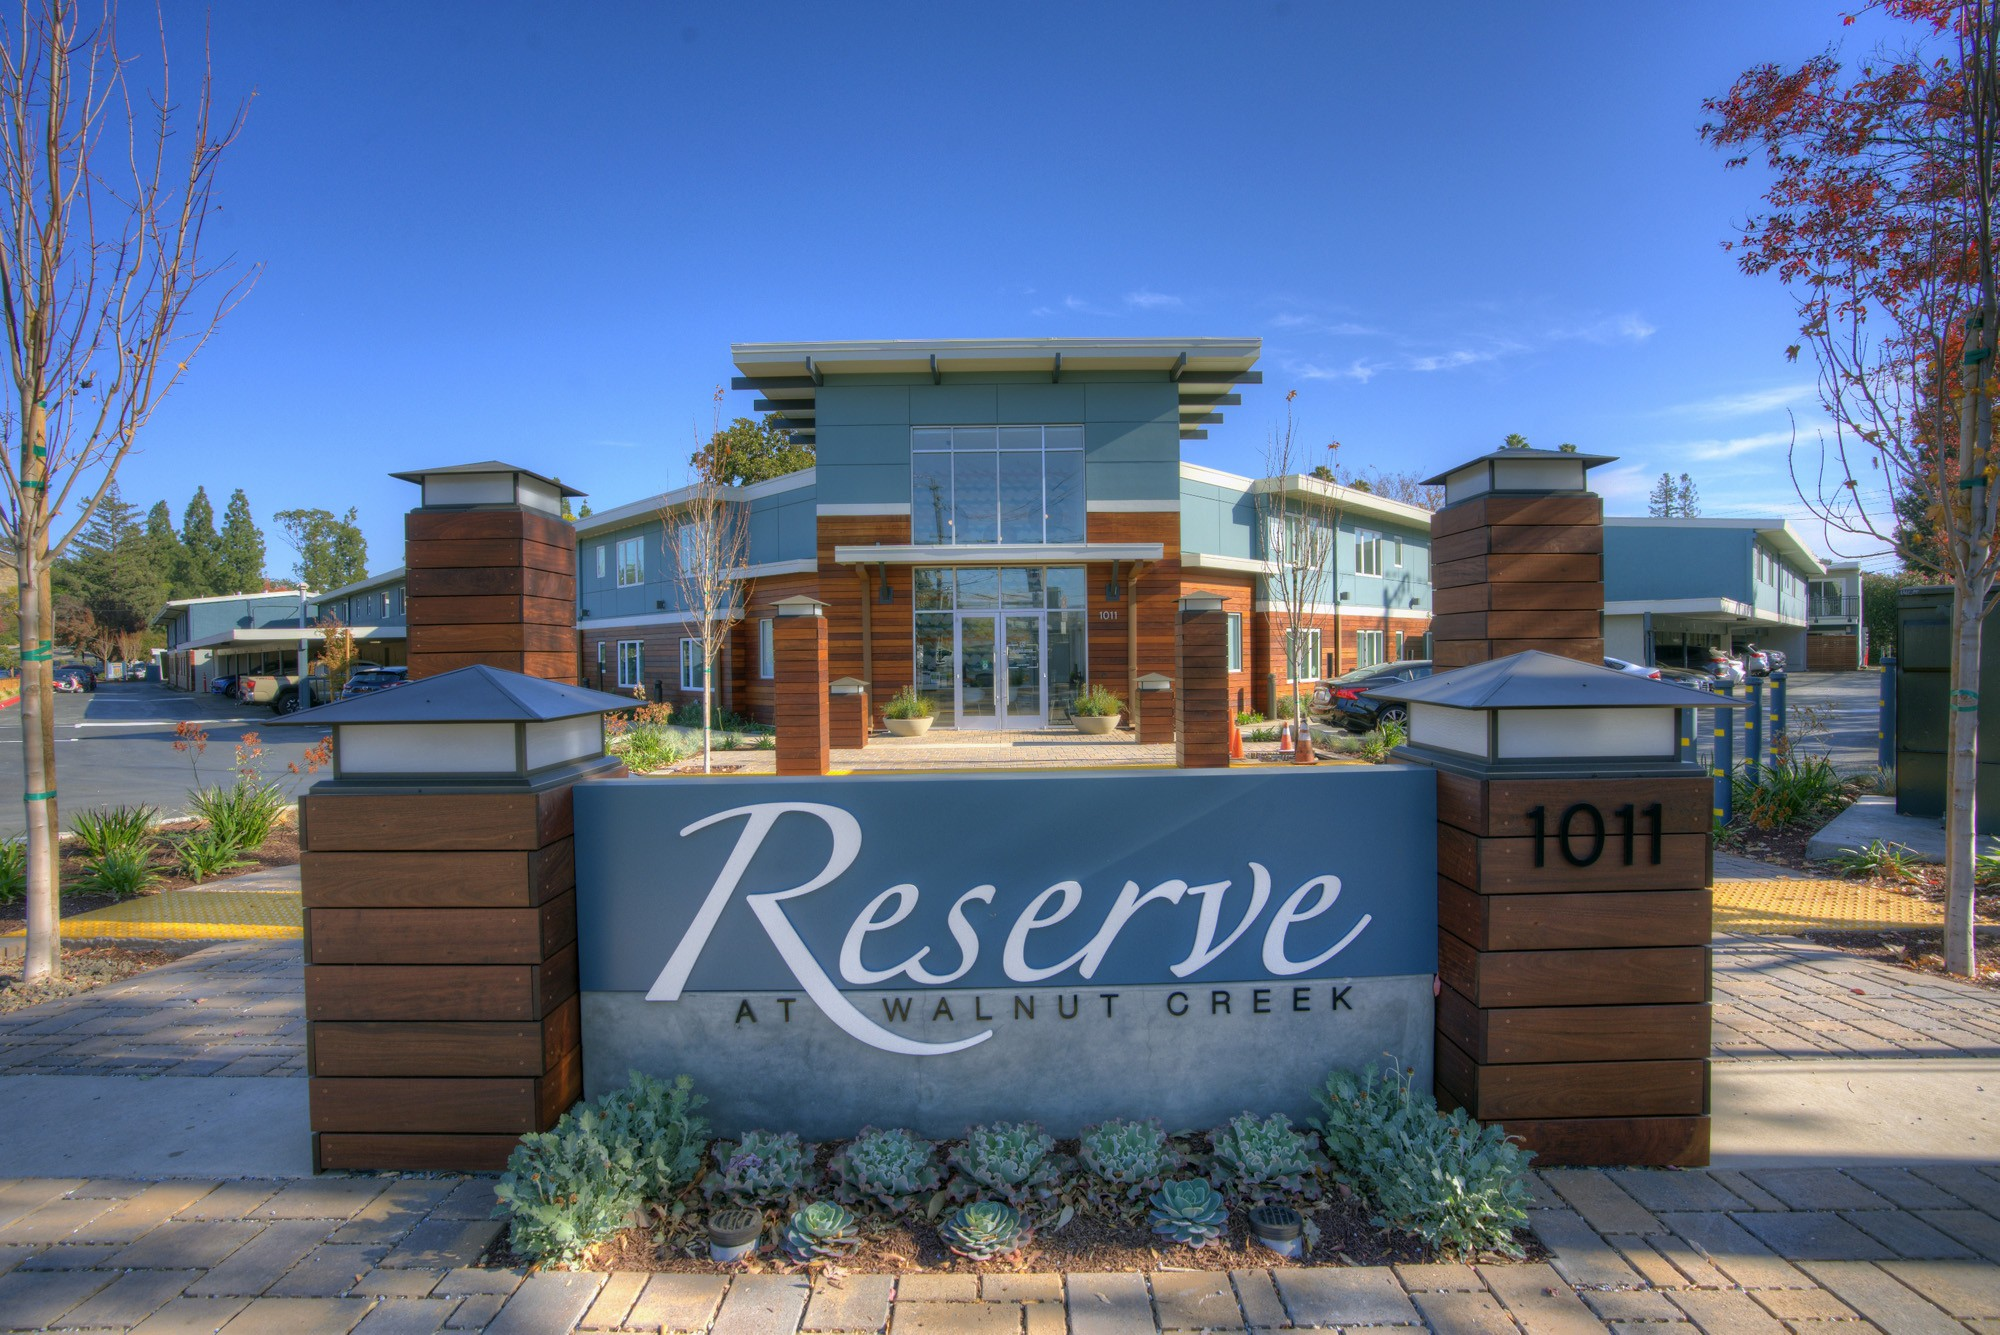 Apartments Near DVC Reserve at Walnut Creek for Diablo Valley College Students in Pleasant Hill, CA